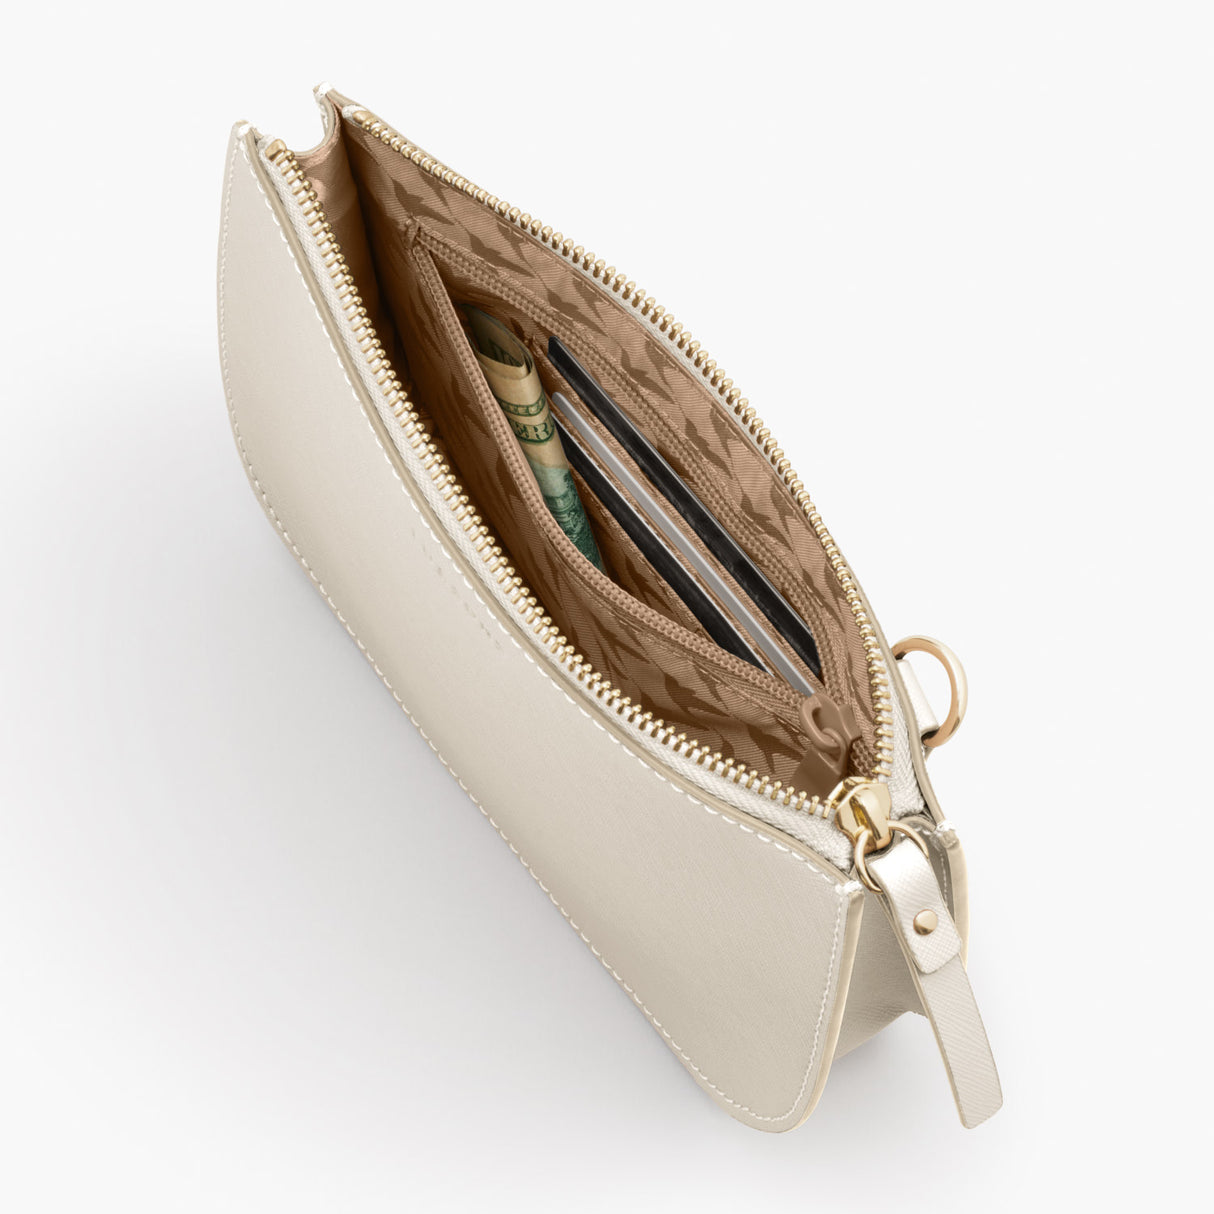 Pocket Crossbody - The Waverley 2 - Saffiano Leather - Ivory / Gold / Camel - Crossbody - Lo & Sons